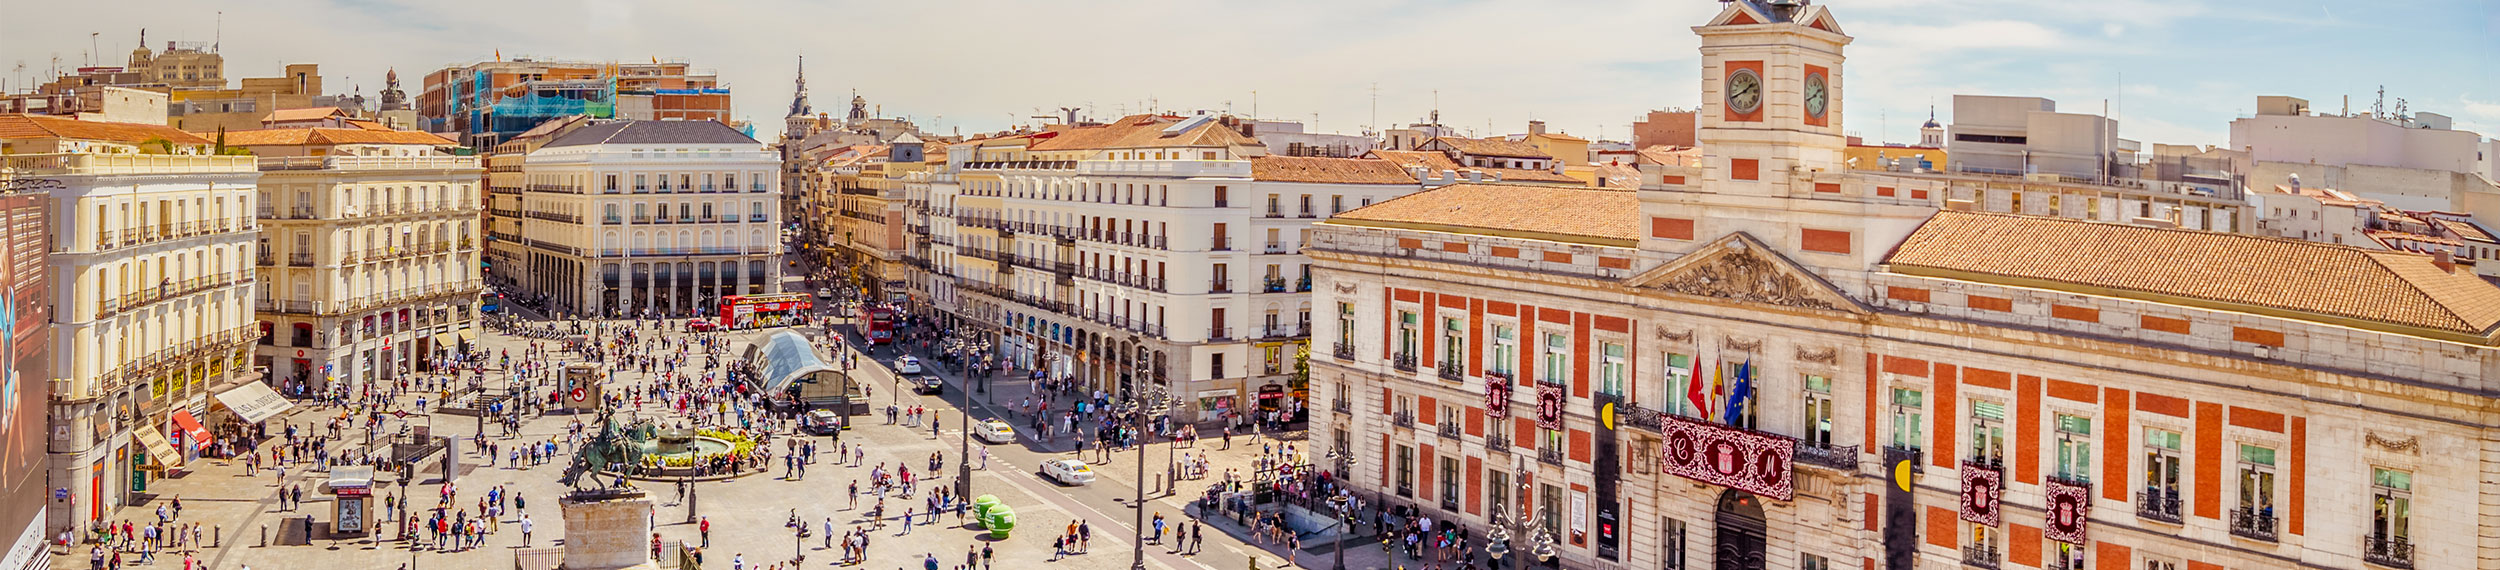 The Puerta del Sol square is the main public square in the city of Madrid, Spain